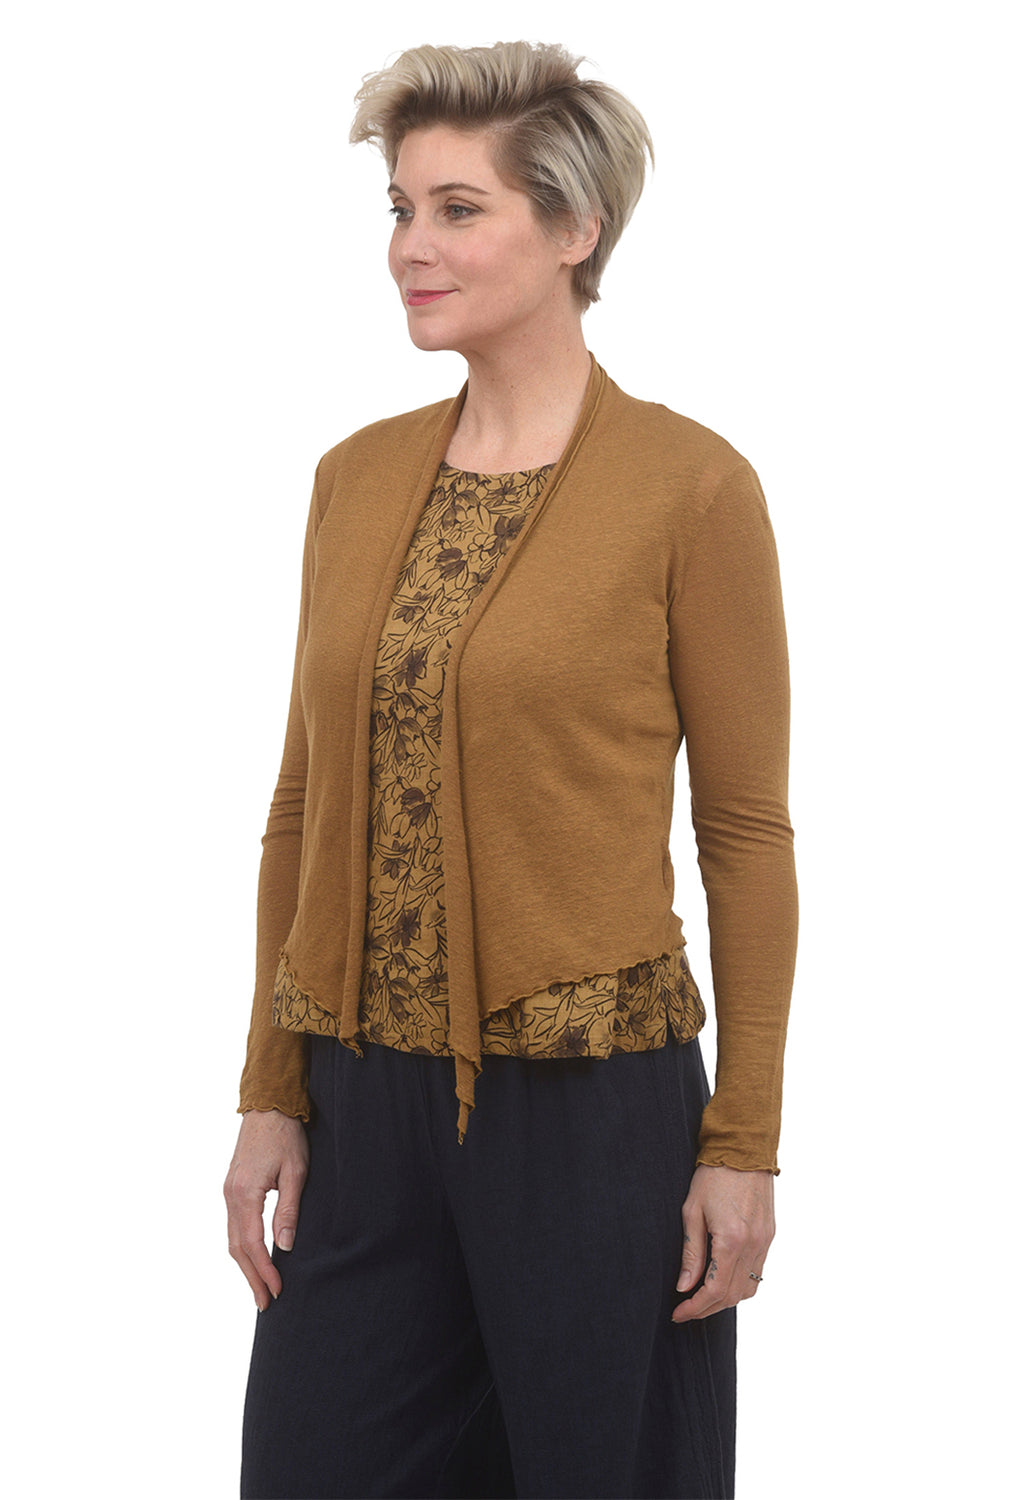 Cut Loose CL Linen Knit Cardie, Brass